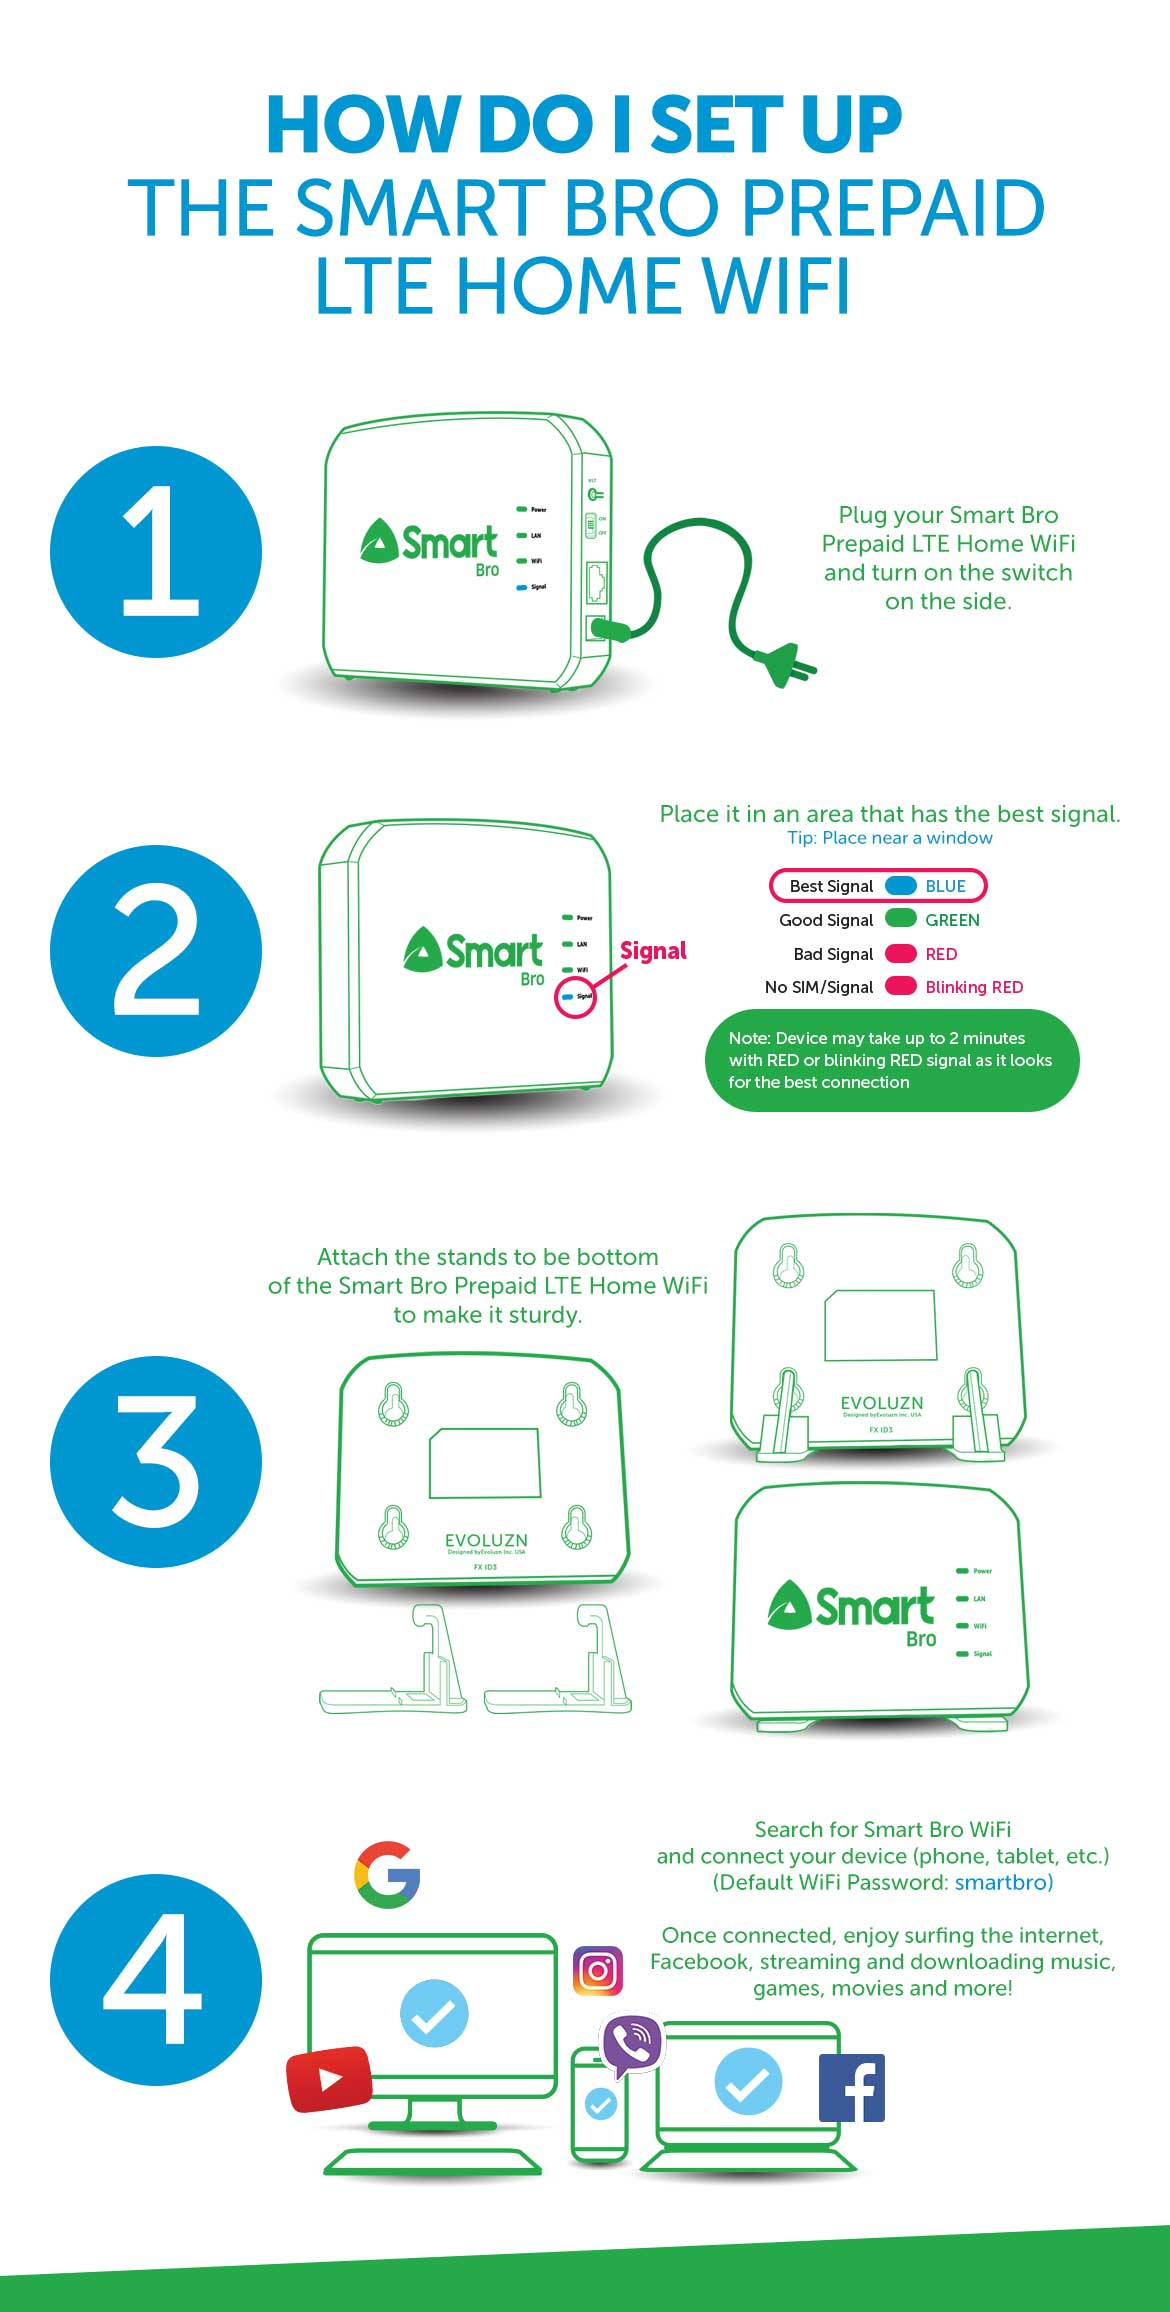 Pocket WiFis And Gadgets Smart Broadband - Prepaid home internet plans